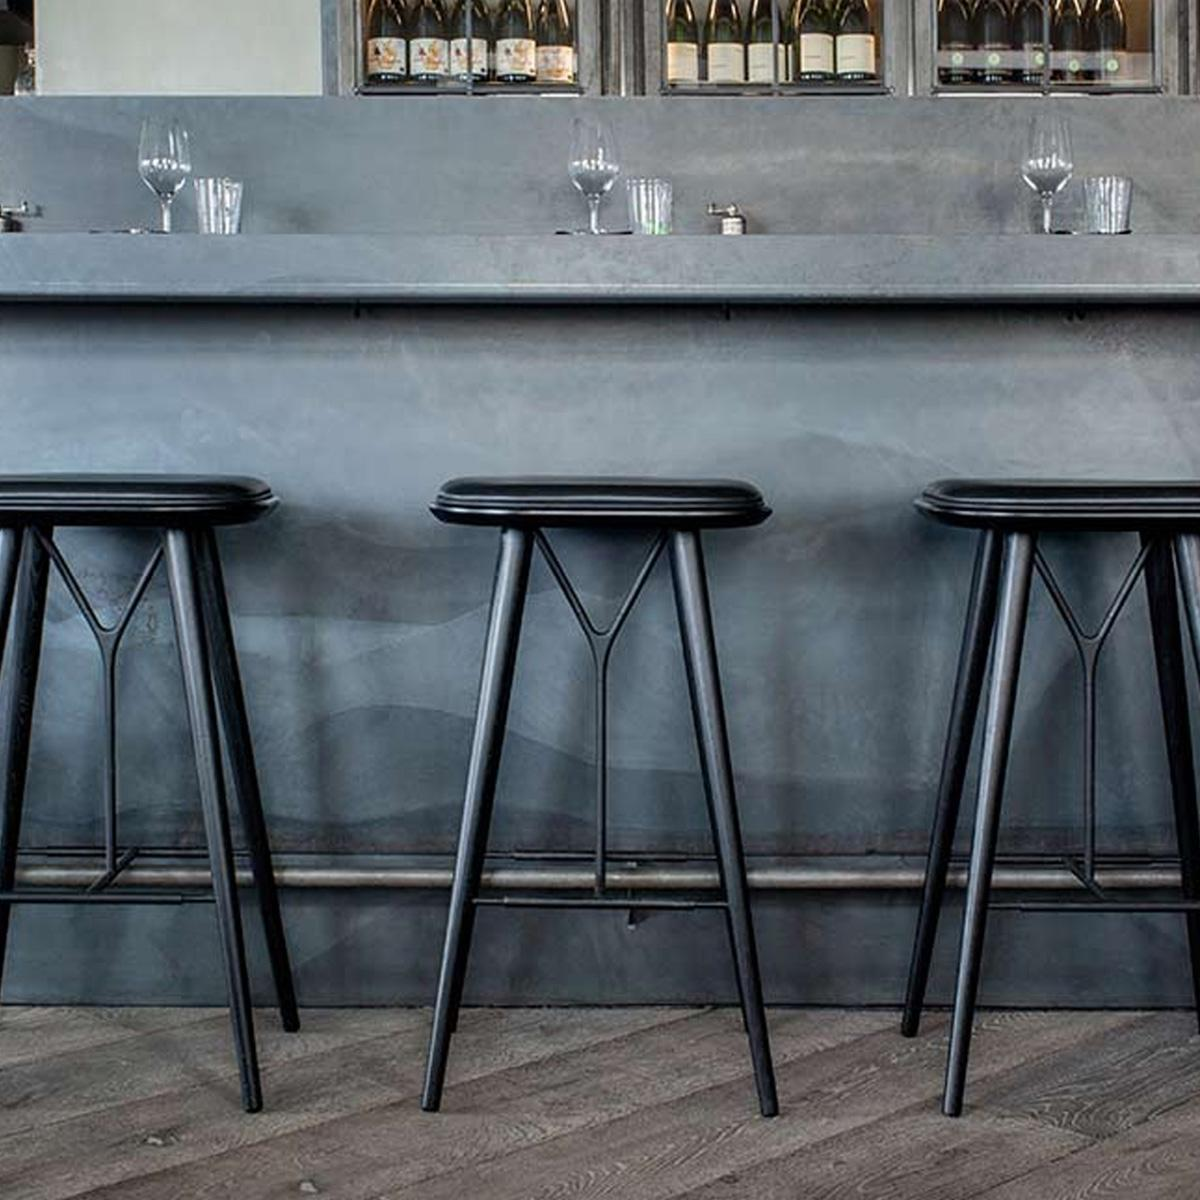 1200_0000_Spine-Stool-Insitu-Black-1200